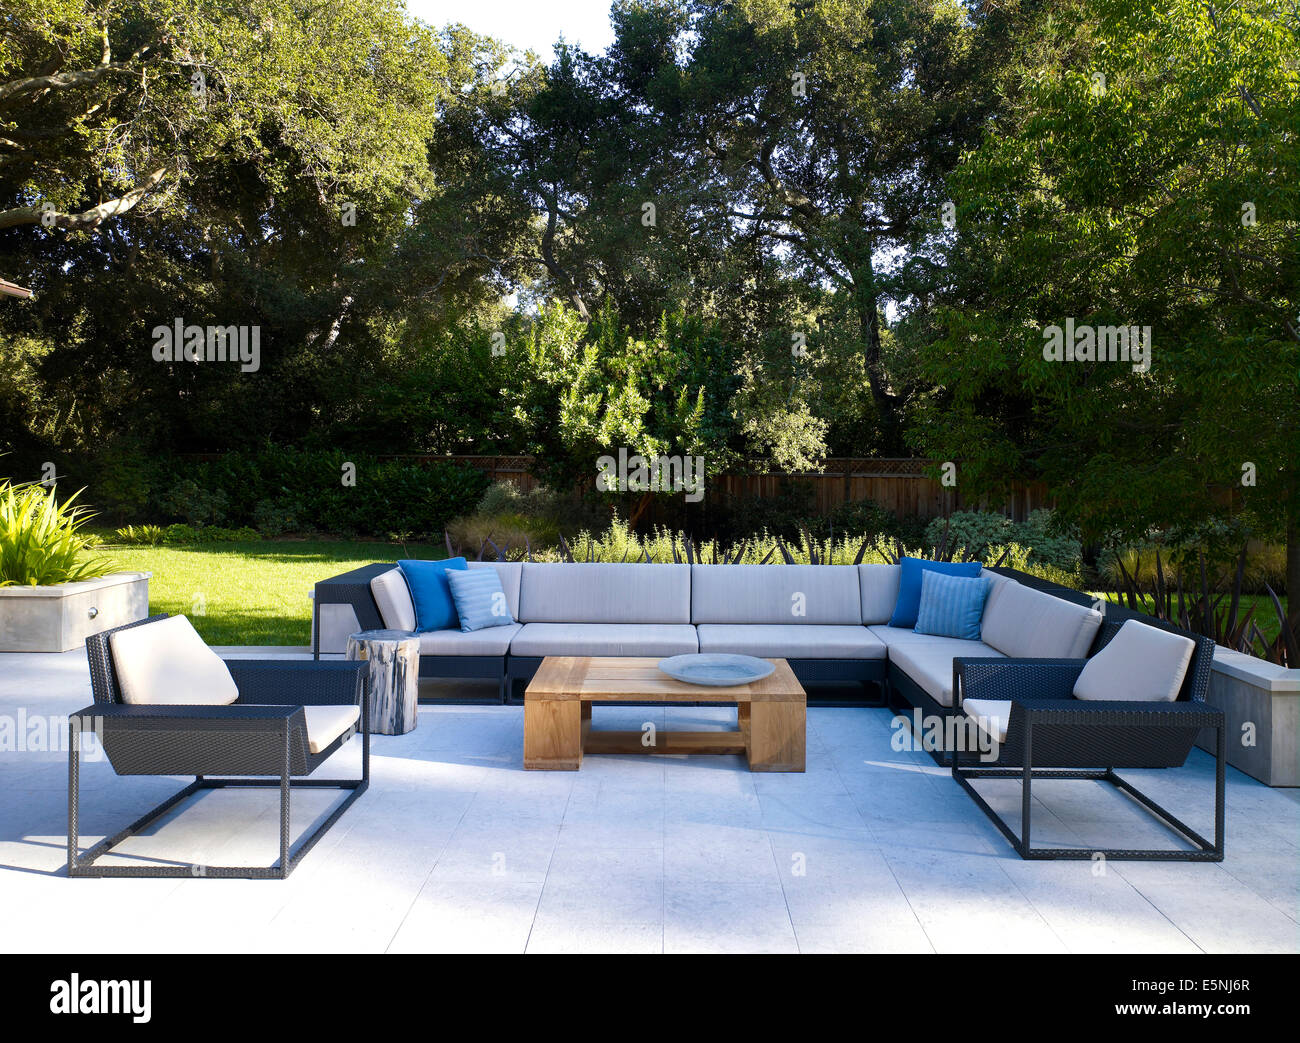 Superb Terrace Furniture In Garden Of Stone House, Atherton, California, USA